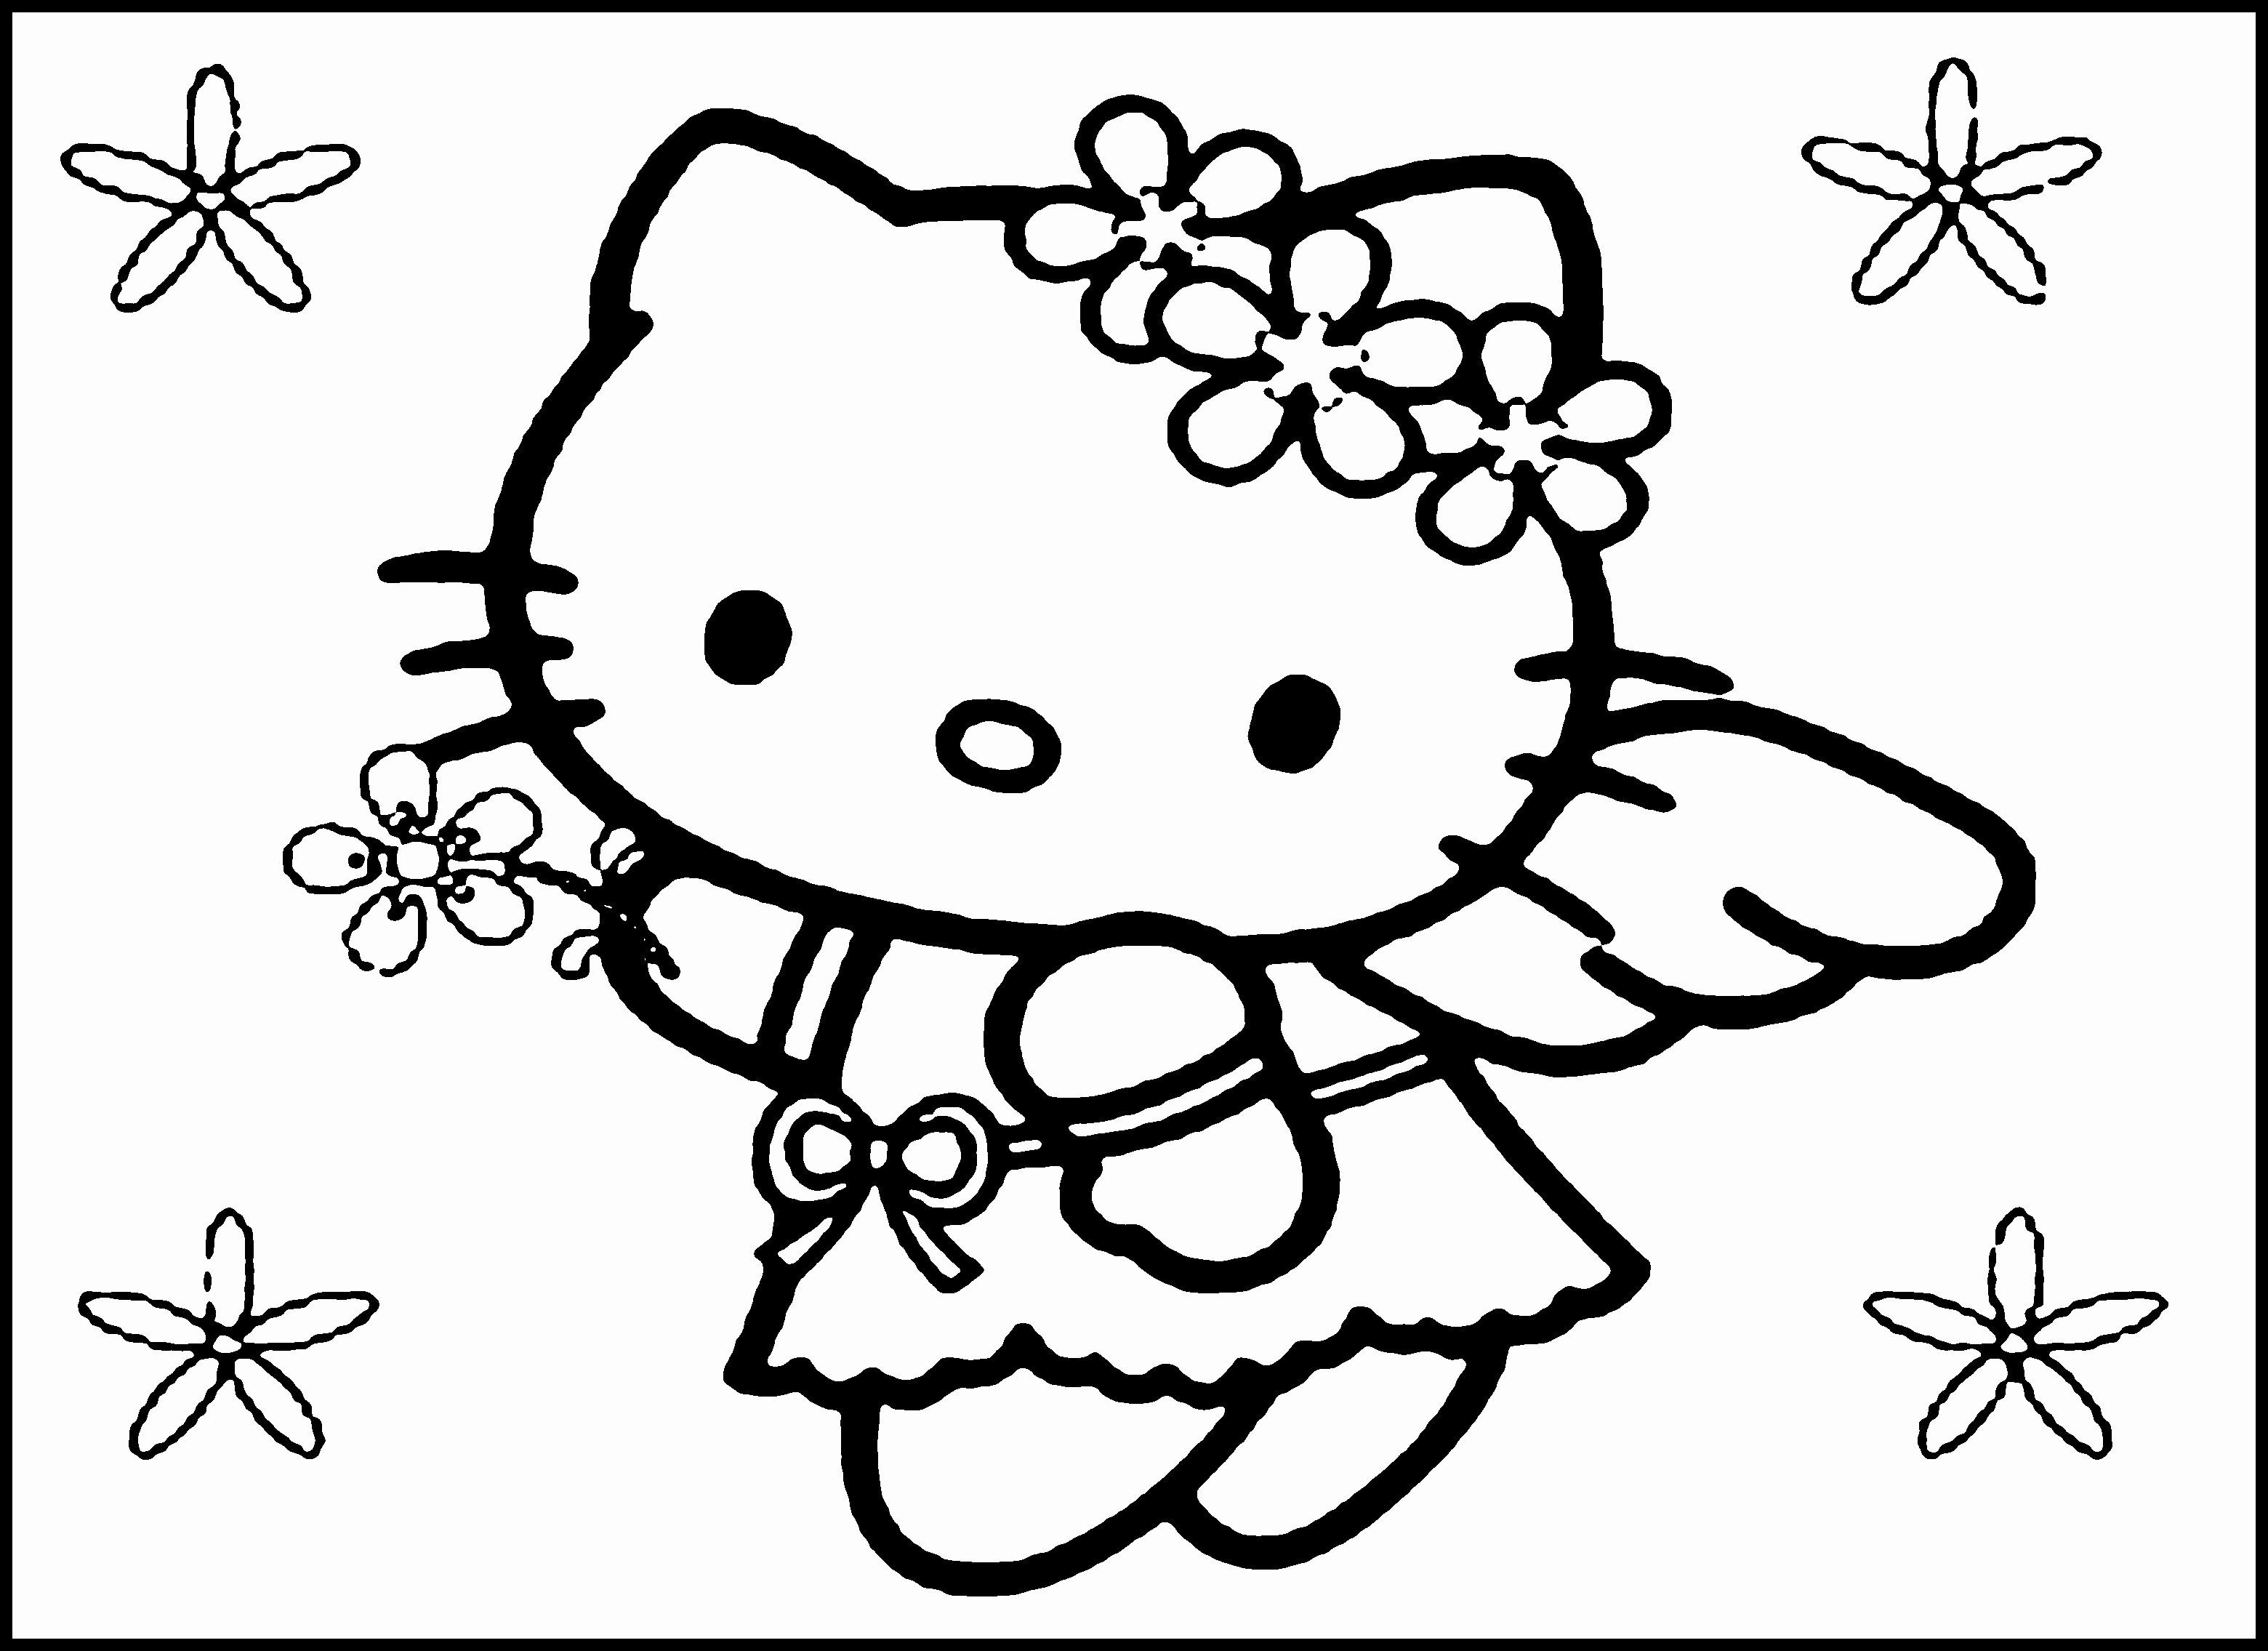 Happy Mothers Day Coloring Sheet Awesome 71 Most Cool Hello Kitty Coloring Book Pages To Print With Hello Kitty Halaman Mewarnai Lembar Mewarnai